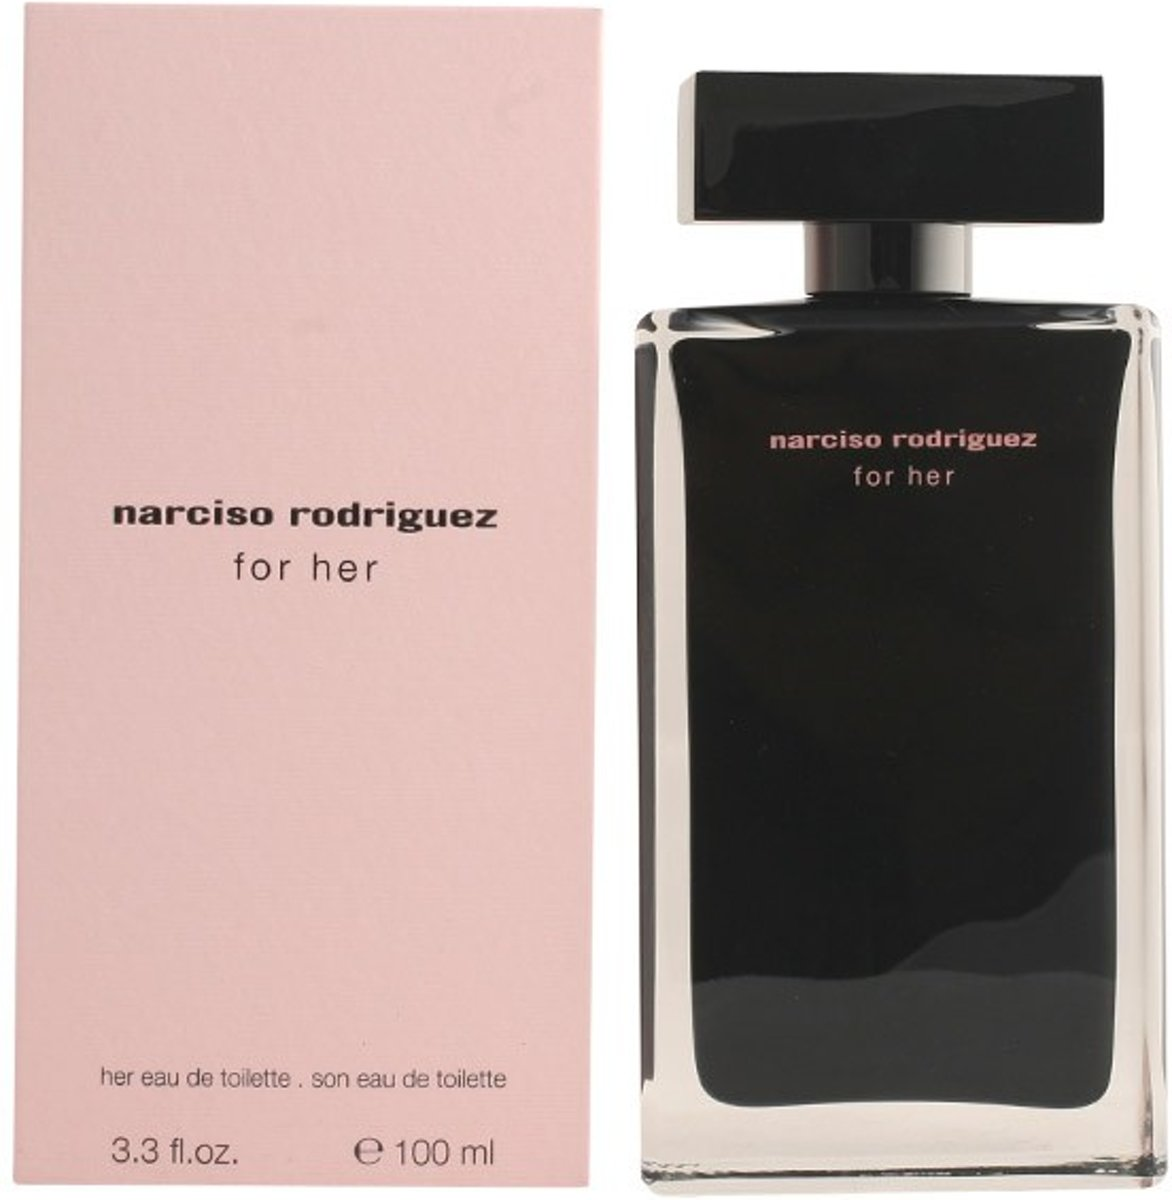 MULTI BUNDEL 2 stuks NARCISO RODRIGUEZ FOR HER Eau de Toilette Spray 100 ml